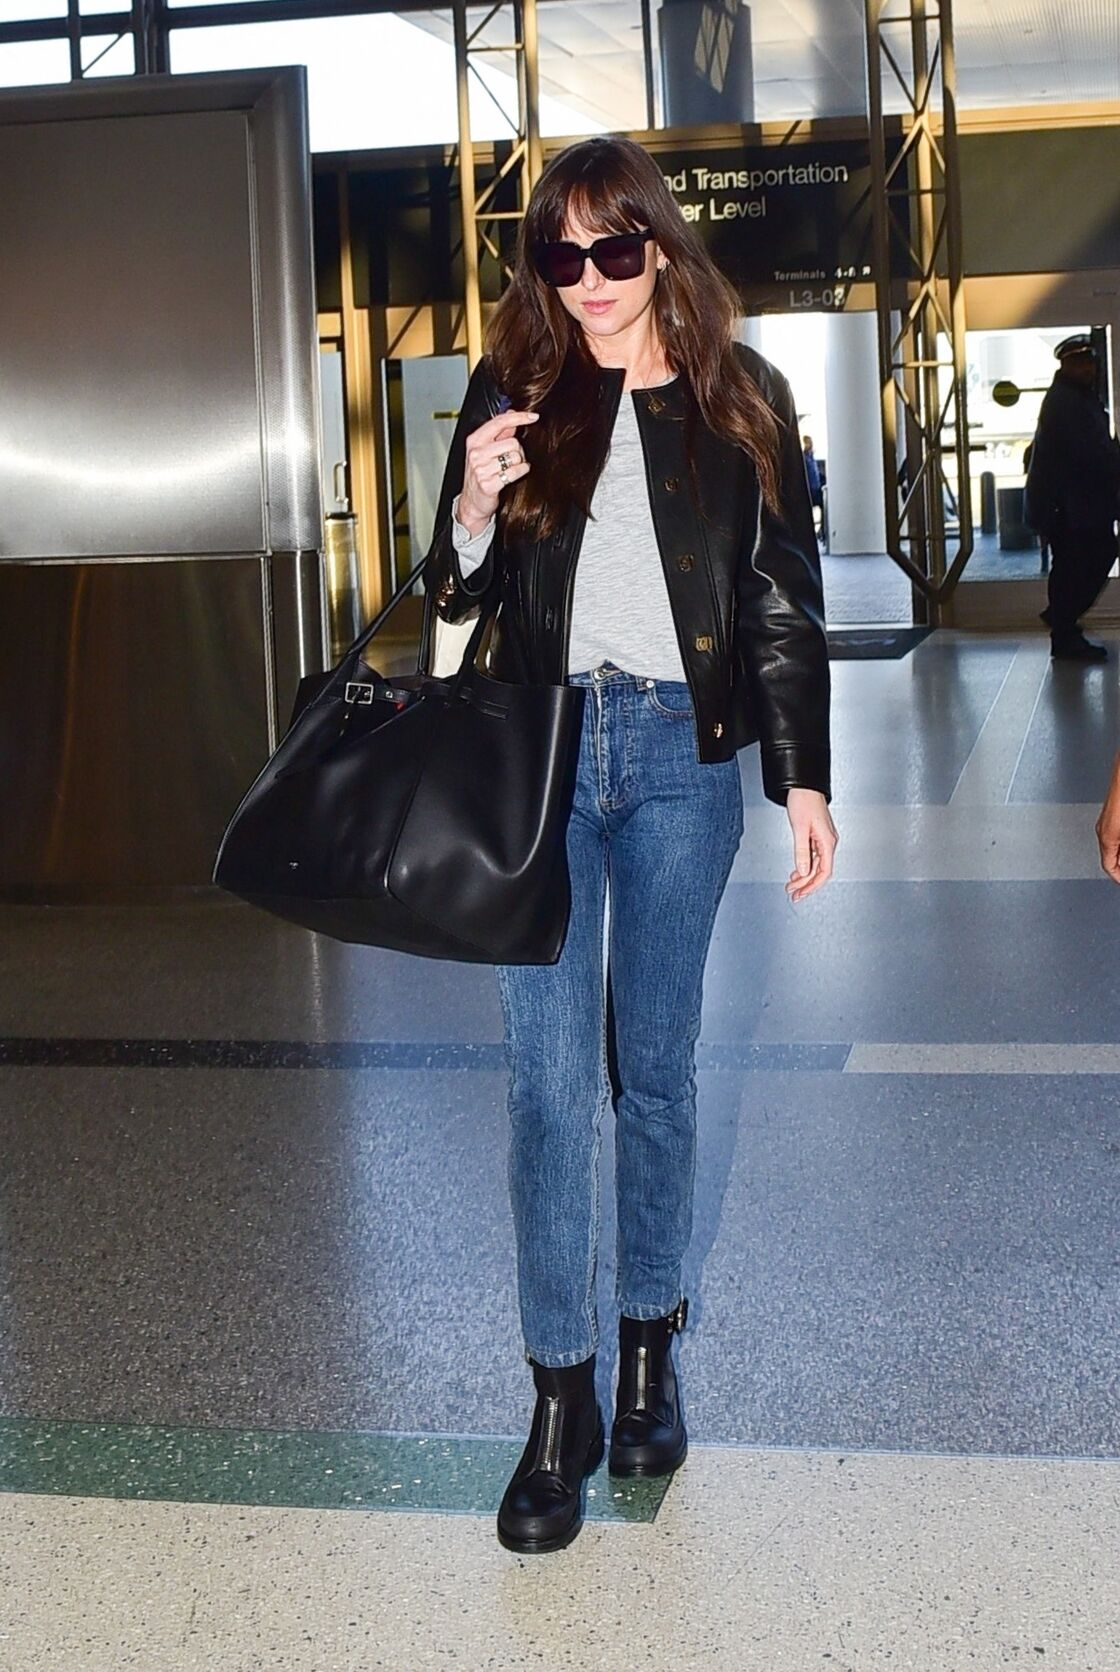 Dakota Johnson affiche un look casual pour voyager : veste en cuir, jean et bottines.